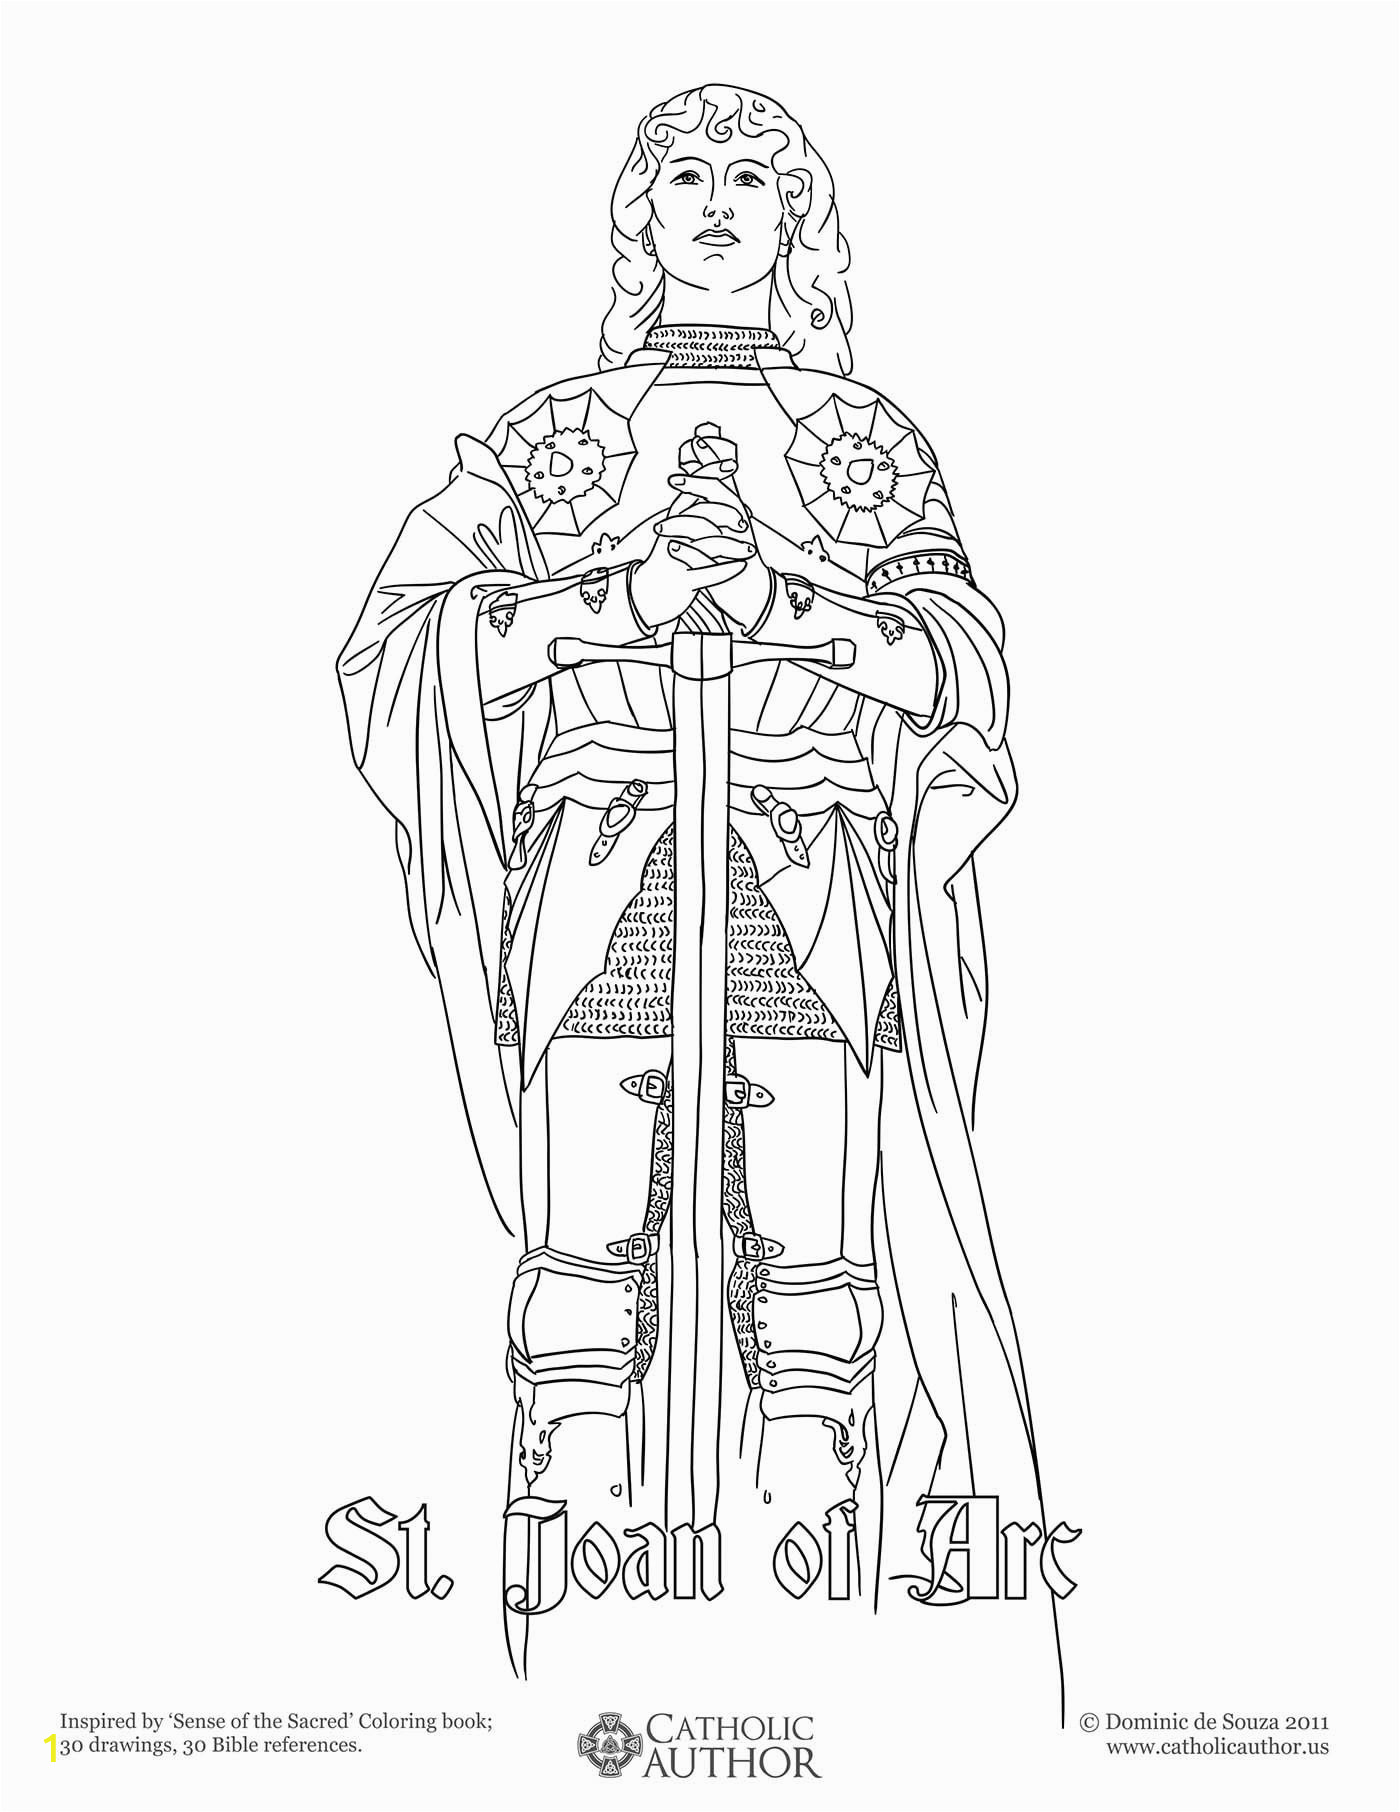 12 free hand drawn catholic coloring pictures